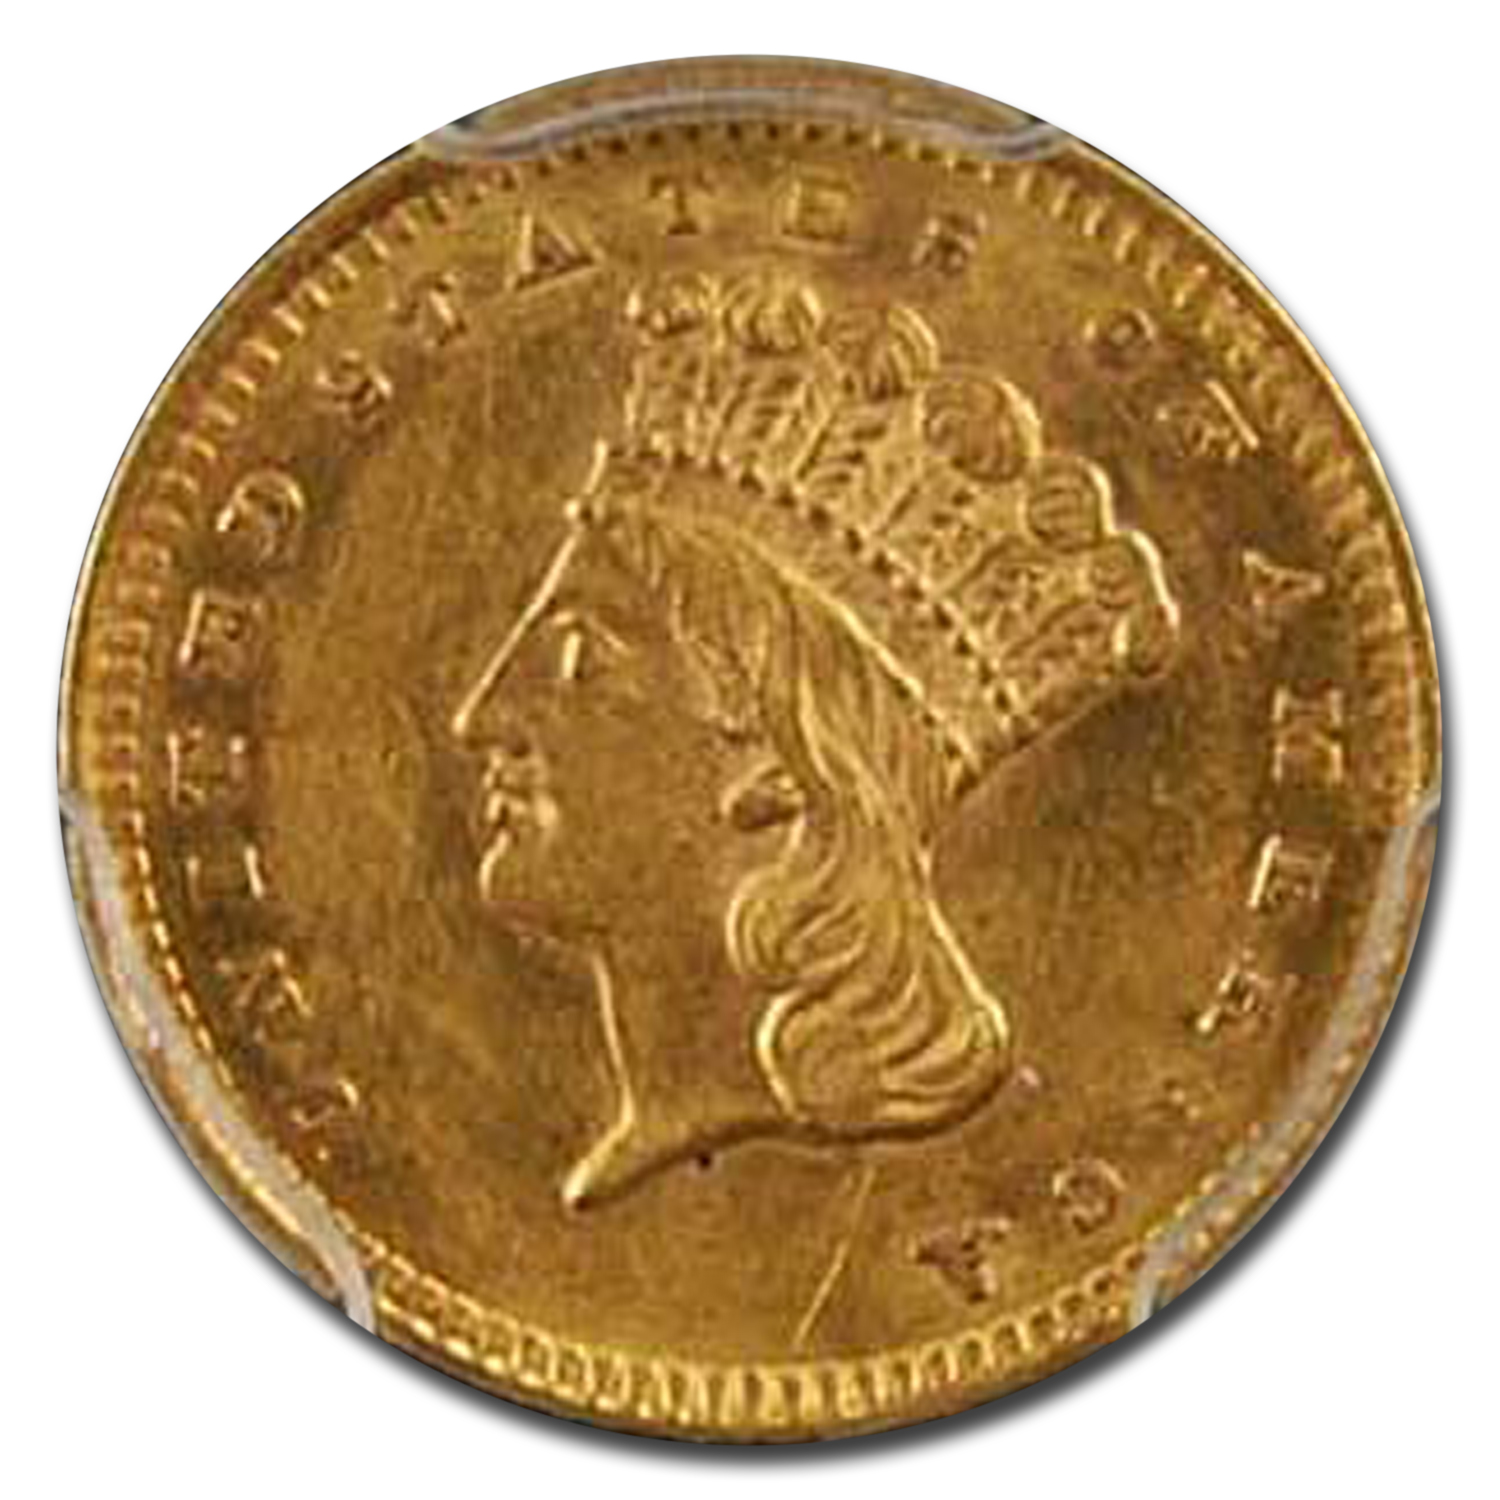 1857 $1 Indian Head Gold - AU-58 PCGS